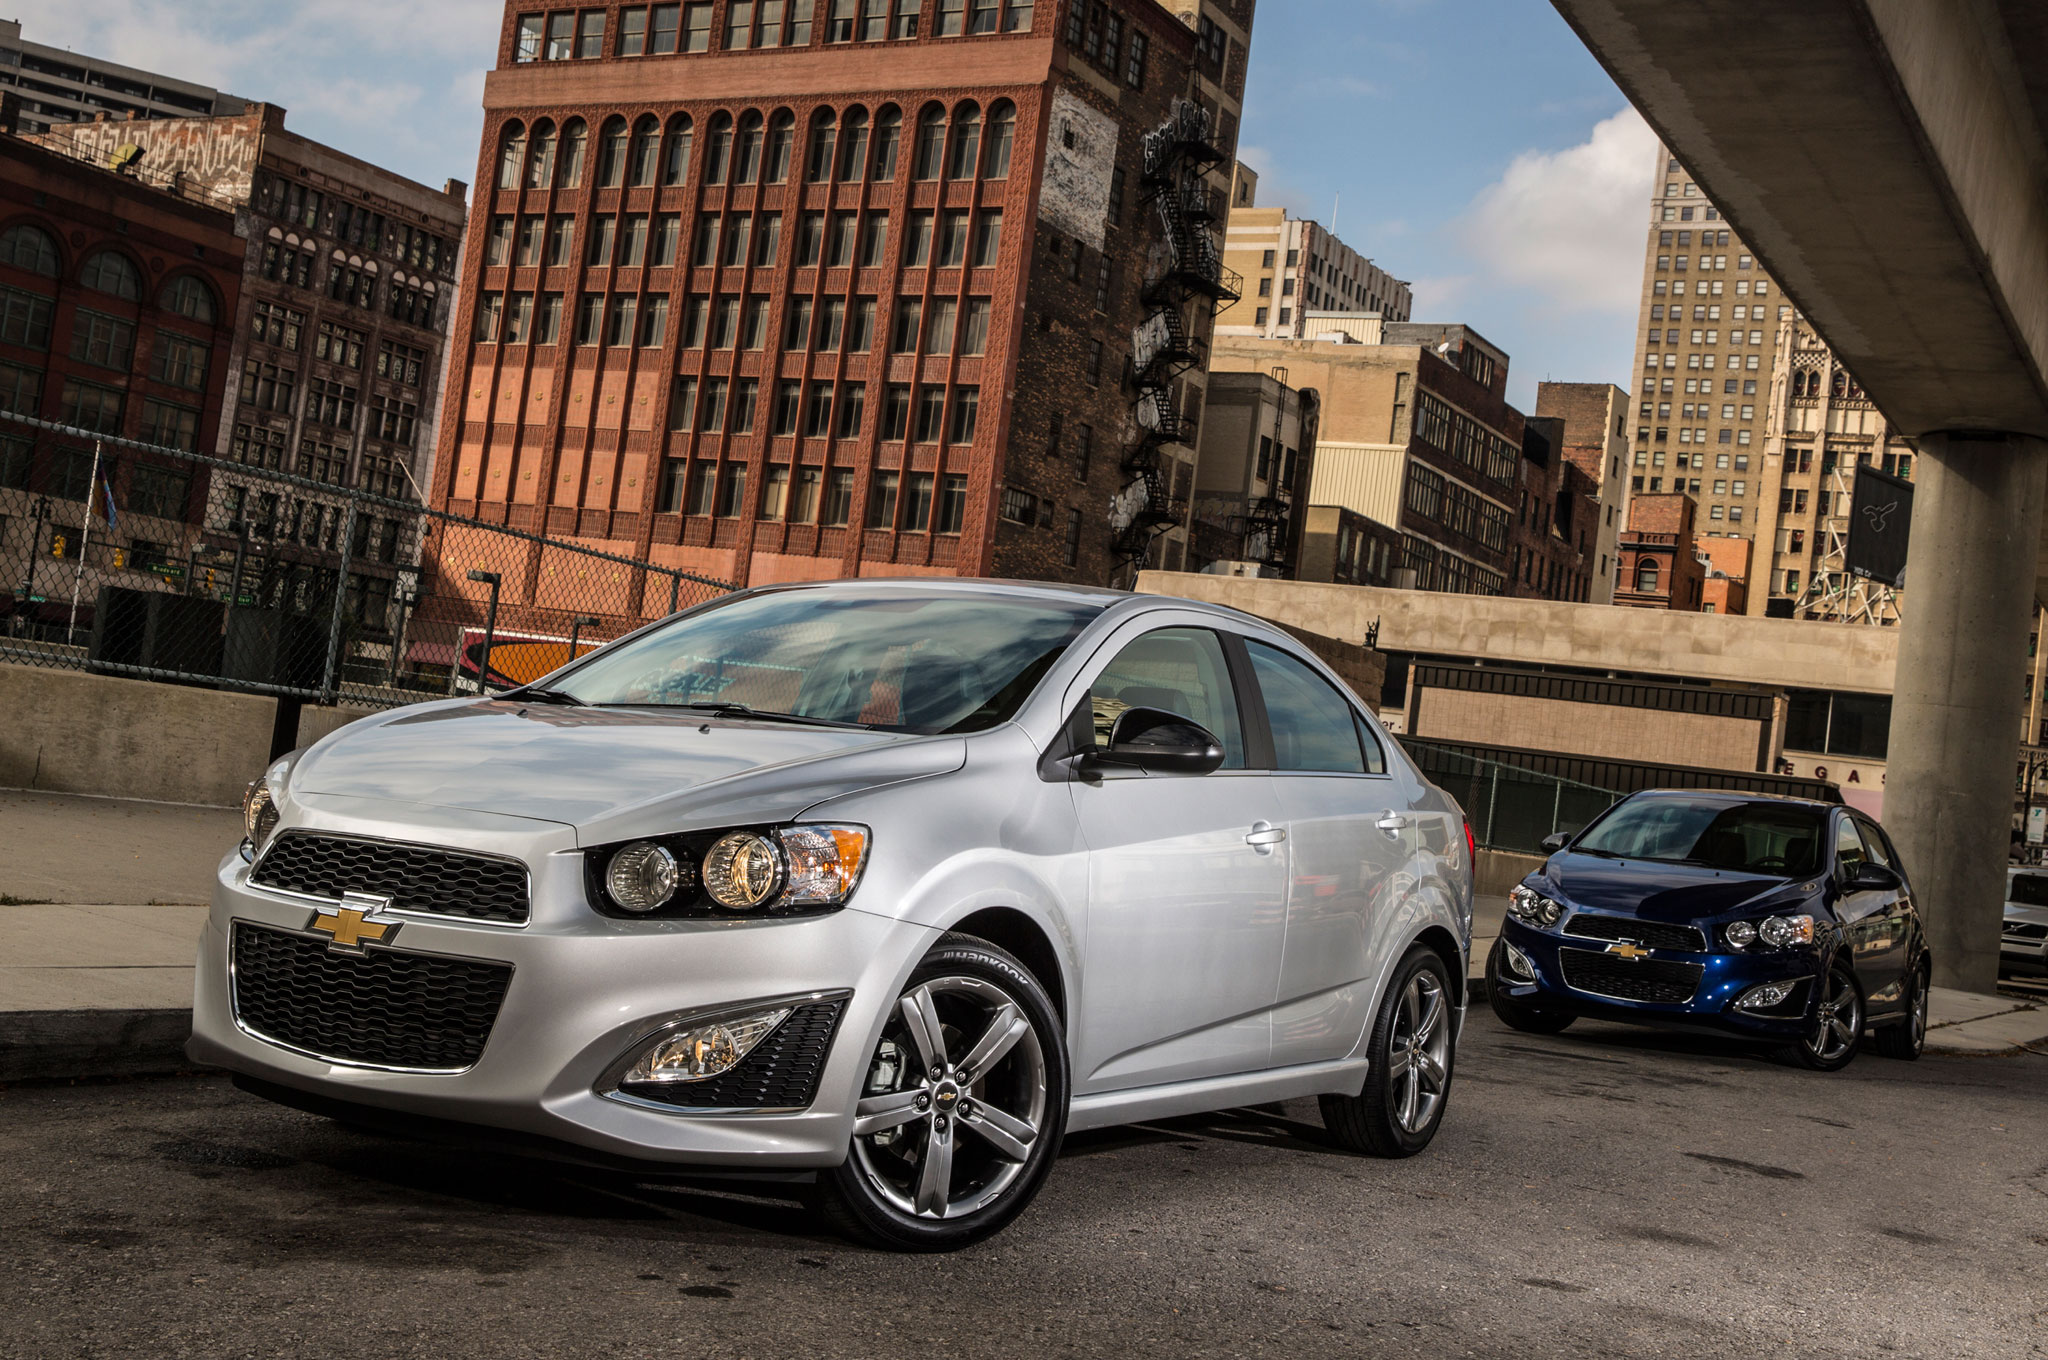 2015 Chevrolet Sonic Buick LaCrosse Cadillac XTS Updated